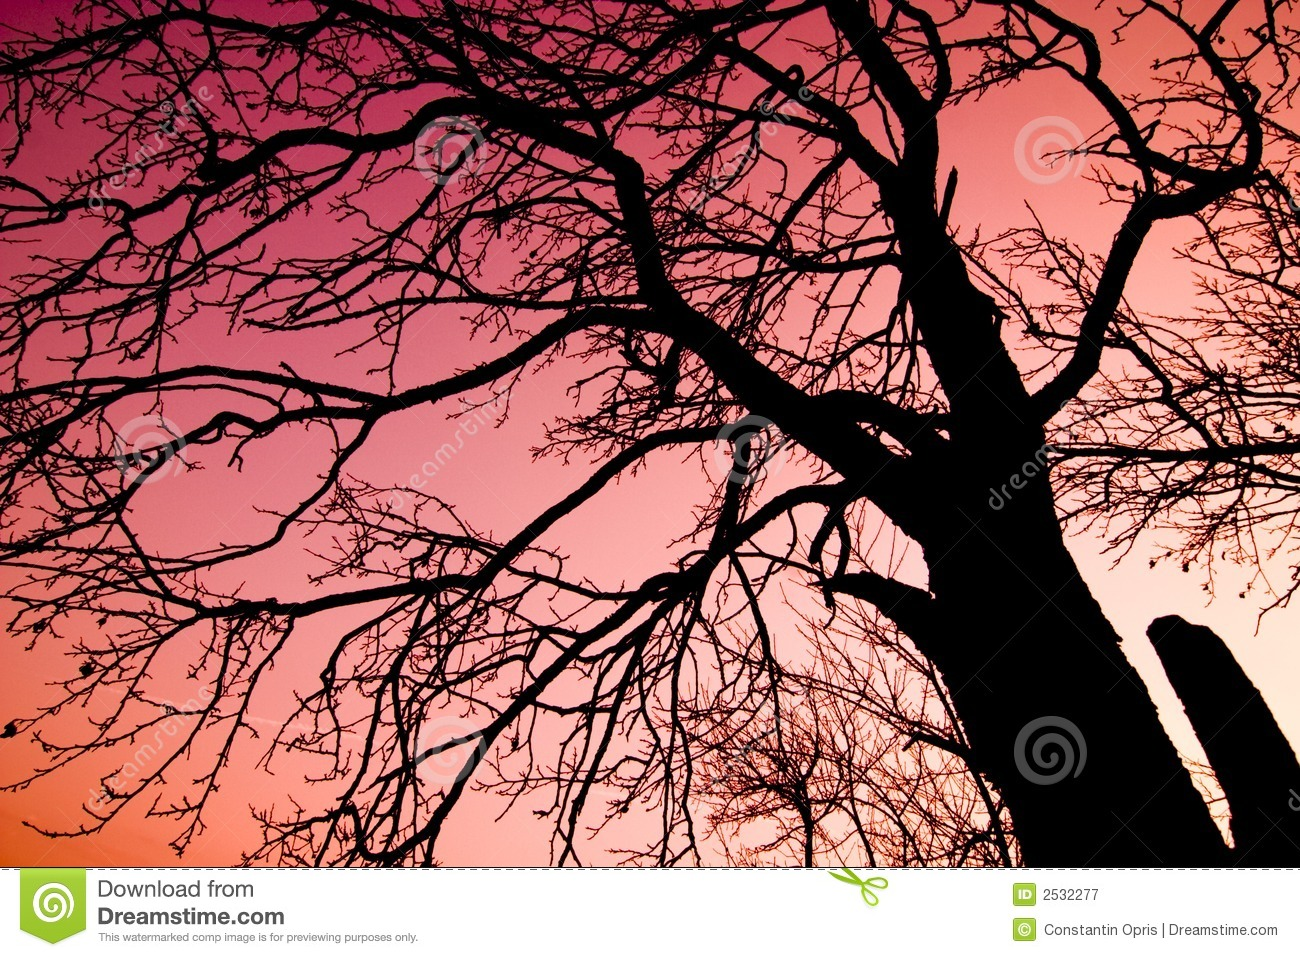 Tree over red sky